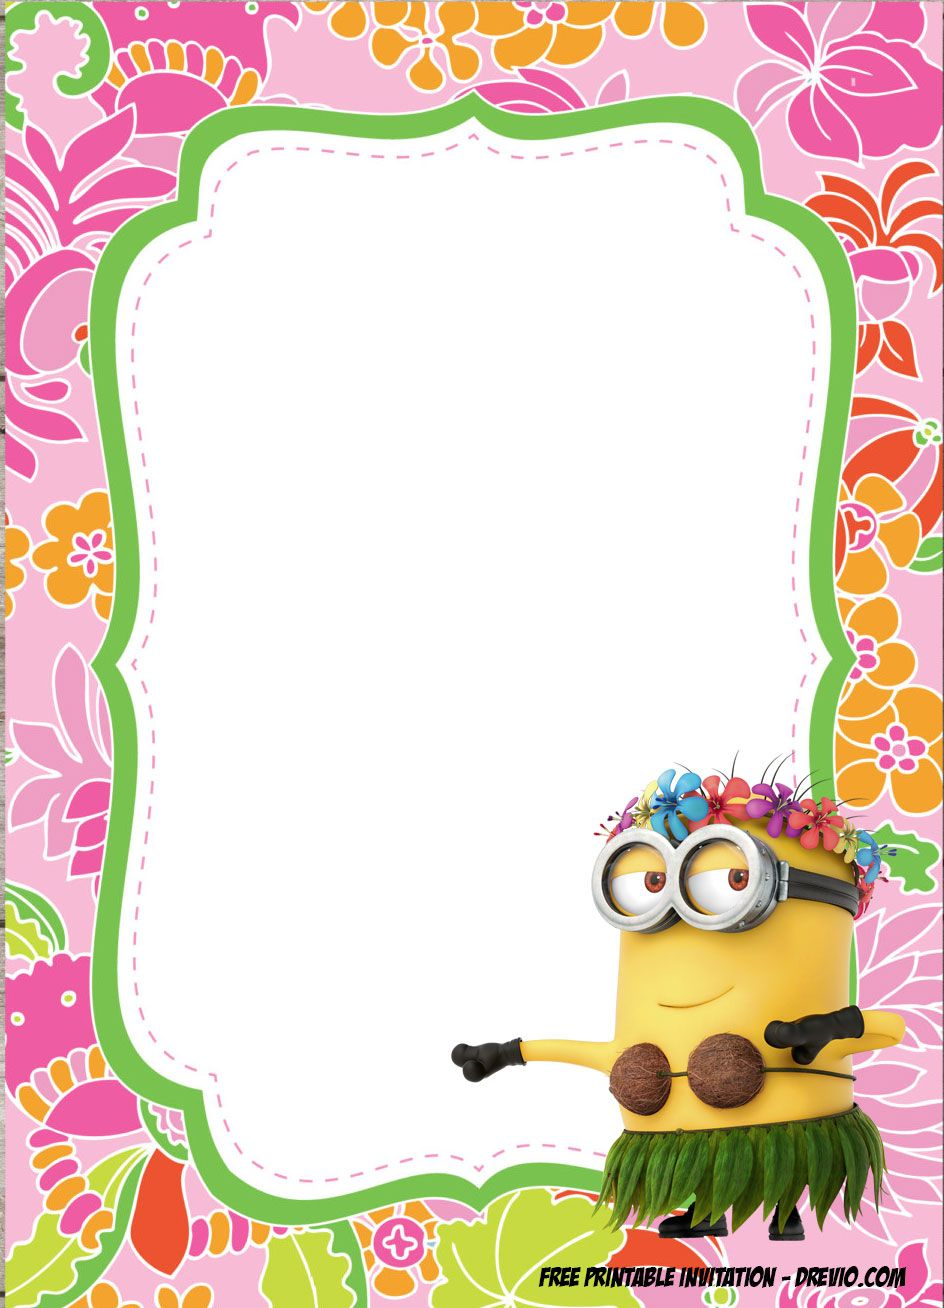 FREE Minions Luau Birthday Invitation Template - Special for Summer ...